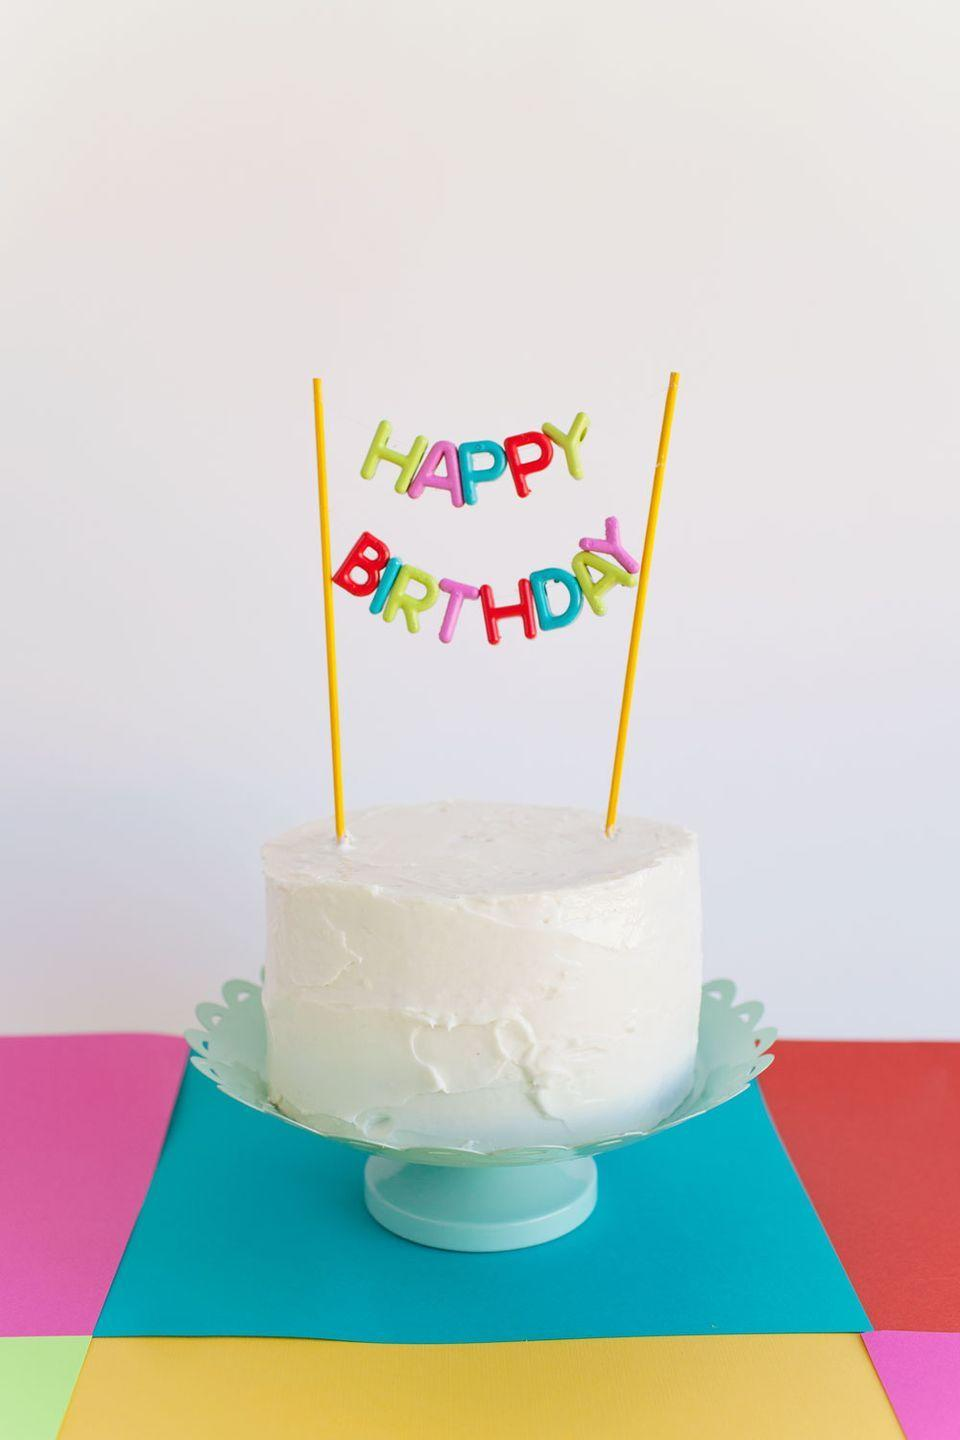 """<p>For a pretty birthday cake topper that gets the message across, all you need is some plastic alphabet beads, skewers, and fishing line. </p><p><strong><em><a href=""""https://tellloveandparty.com/2015/07/alphabet-bead-cake-topper-diy.html"""" rel=""""nofollow noopener"""" target=""""_blank"""" data-ylk=""""slk:Get the tutorial at Tell Love and Party"""" class=""""link rapid-noclick-resp"""">Get the tutorial at Tell Love and Party</a>. </em></strong></p><p><a class=""""link rapid-noclick-resp"""" href=""""https://www.amazon.com/Constructive-Playthings-LER6401-Learning-Resources/dp/B0008GHV7Q?tag=syn-yahoo-20&ascsubtag=%5Bartid%7C10070.g.37055923%5Bsrc%7Cyahoo-us"""" rel=""""nofollow noopener"""" target=""""_blank"""" data-ylk=""""slk:SHOP ALPHABET BEADS"""">SHOP ALPHABET BEADS</a></p>"""